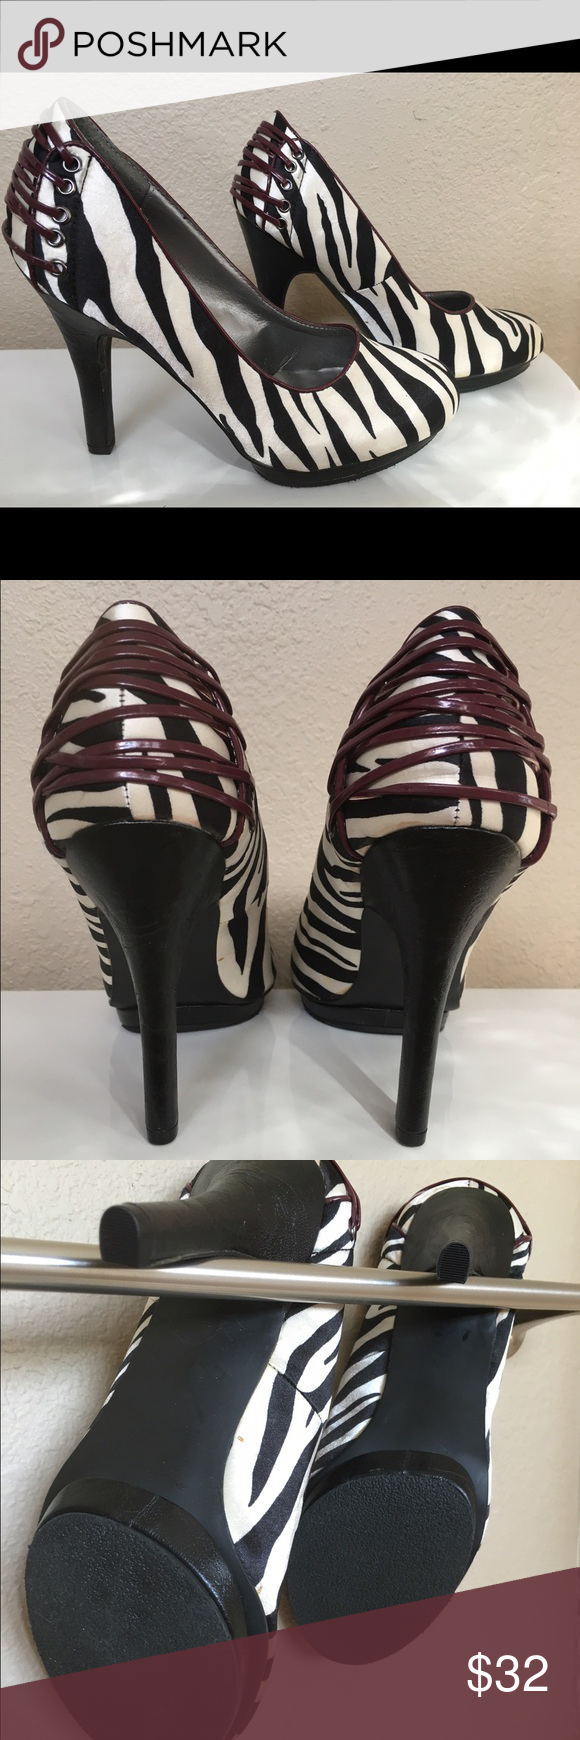 Madden Girl Zebra Print Heels Never worn in great shape! Runs slightly large for an 8.5! Would fit a size 9! NEW WITHOUT BOX Madden Girl Shoes Heels